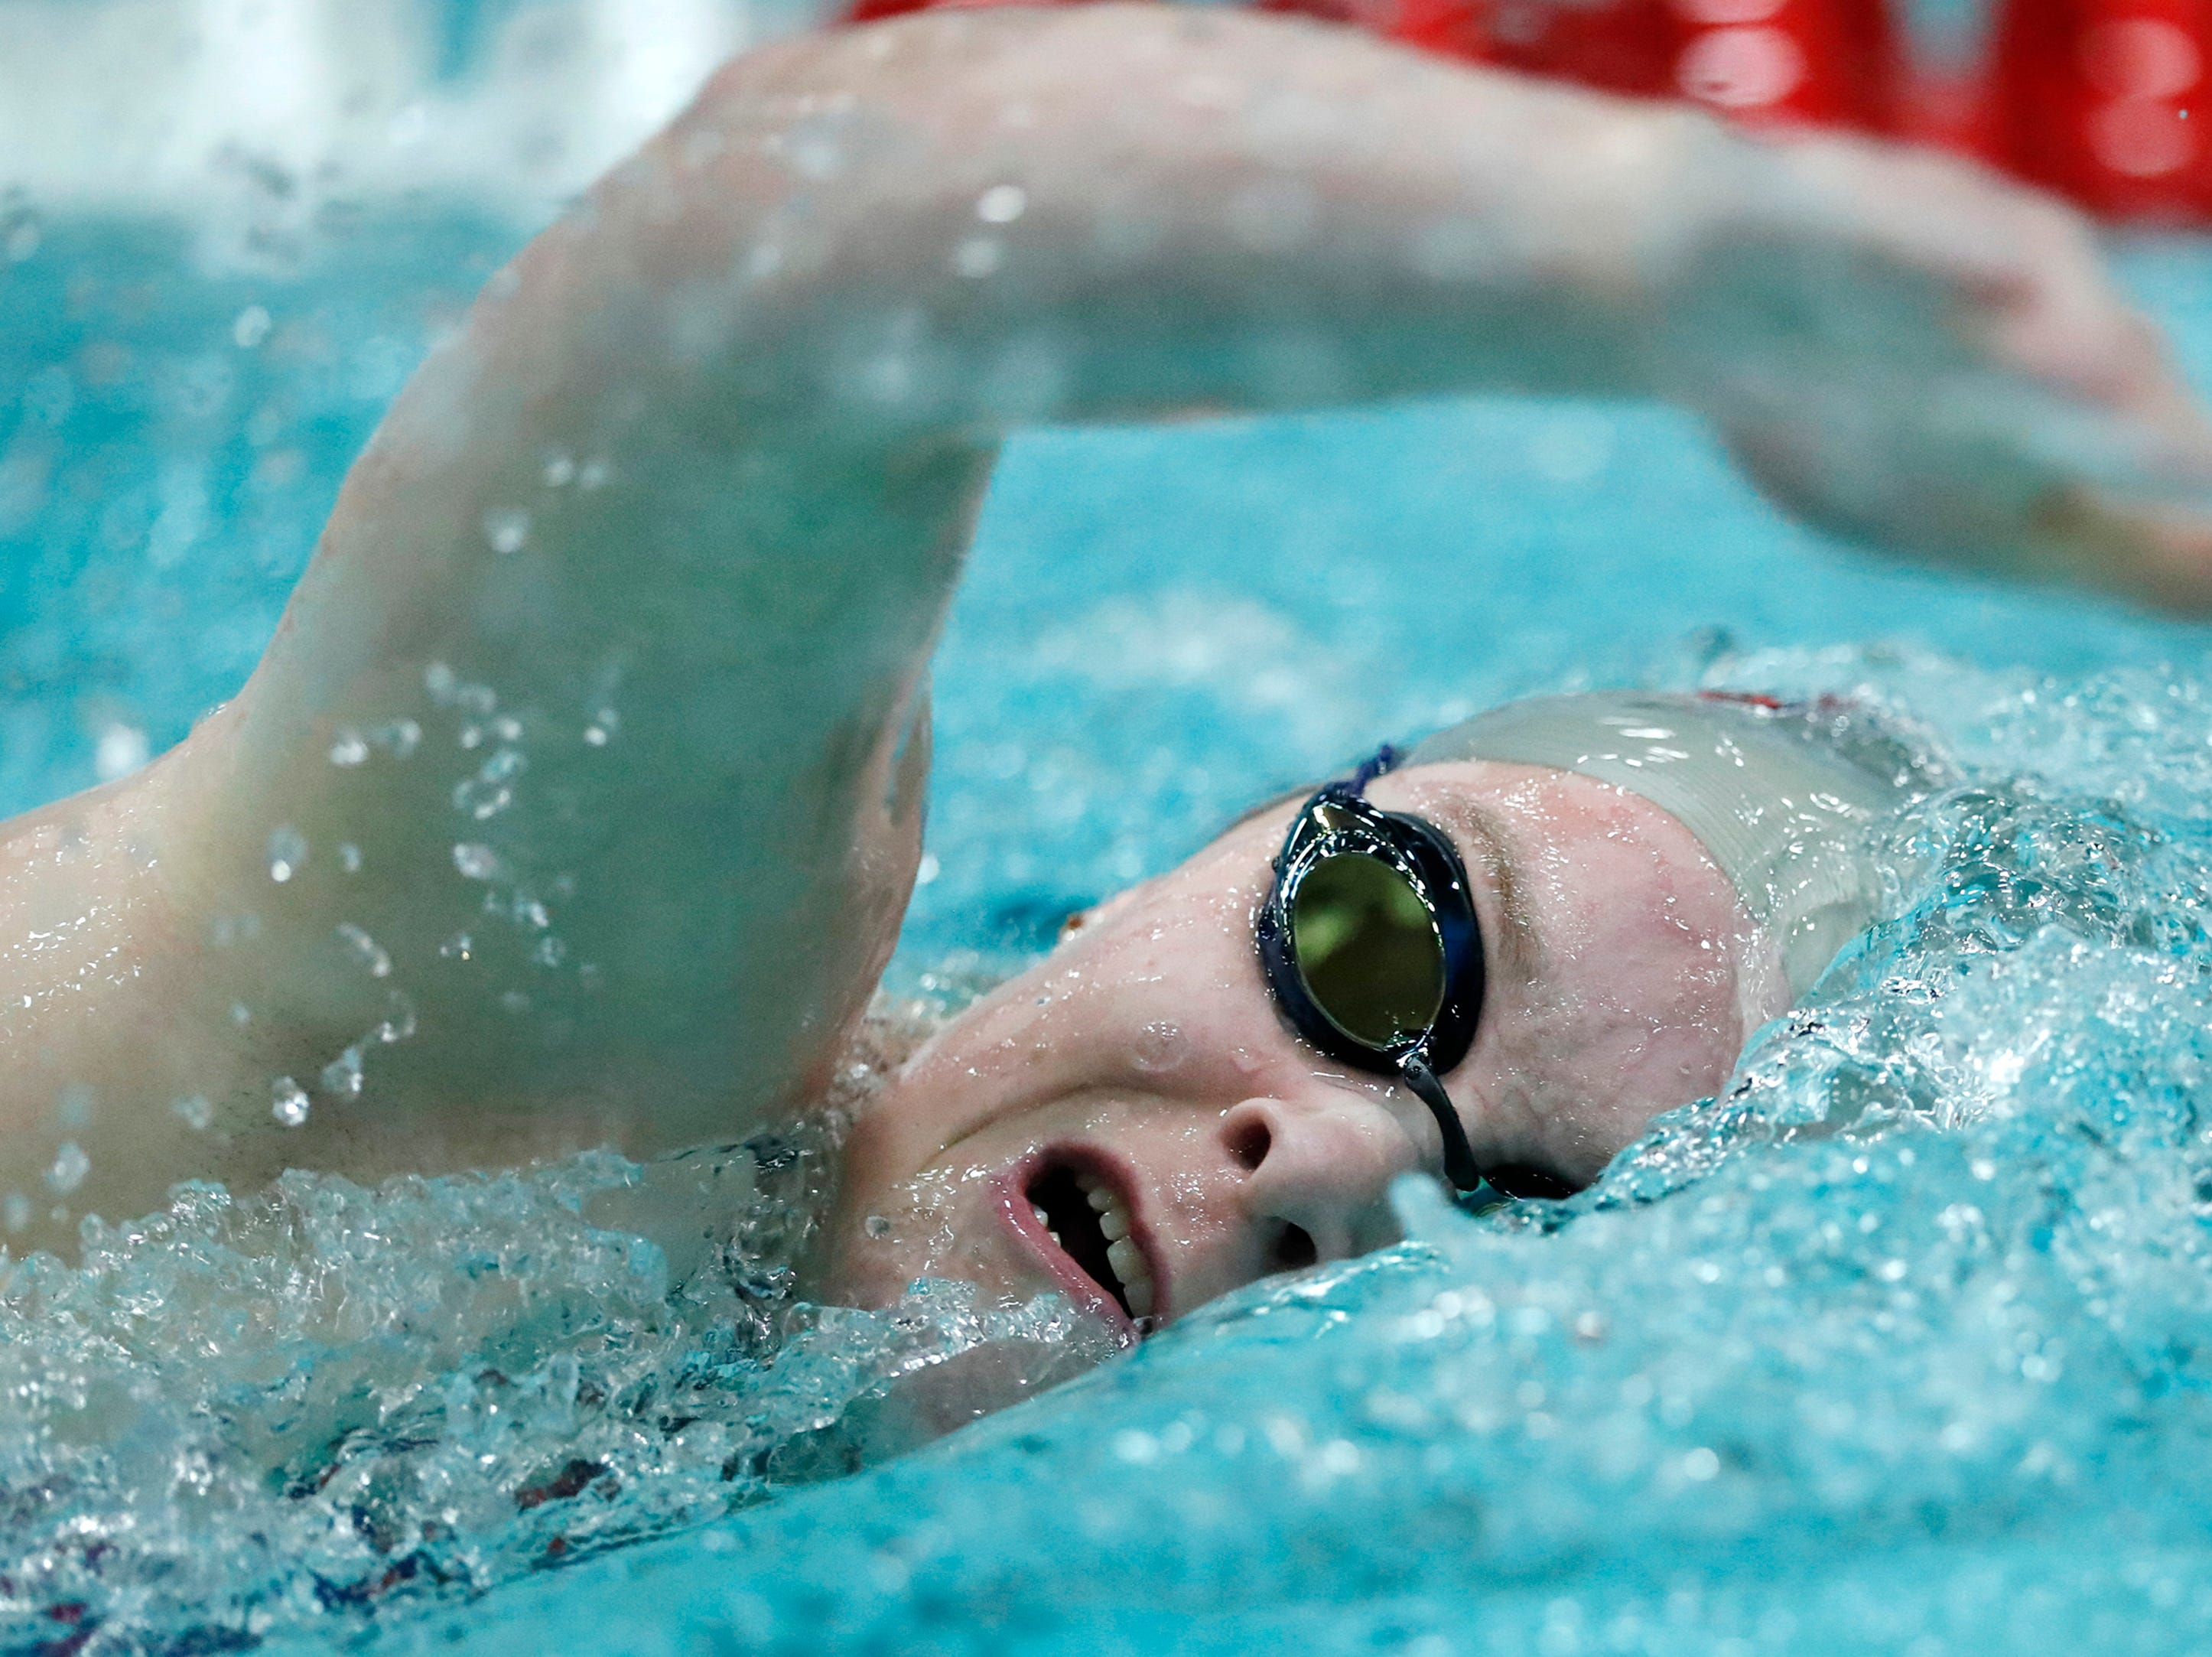 Medford's Erin Bergman races in the 200 yard freestyle during the WIAA Division 2 State Swimming and Diving meet Friday, Nov. 9, 2018, at the UW Natatorium in Madison, Wis.